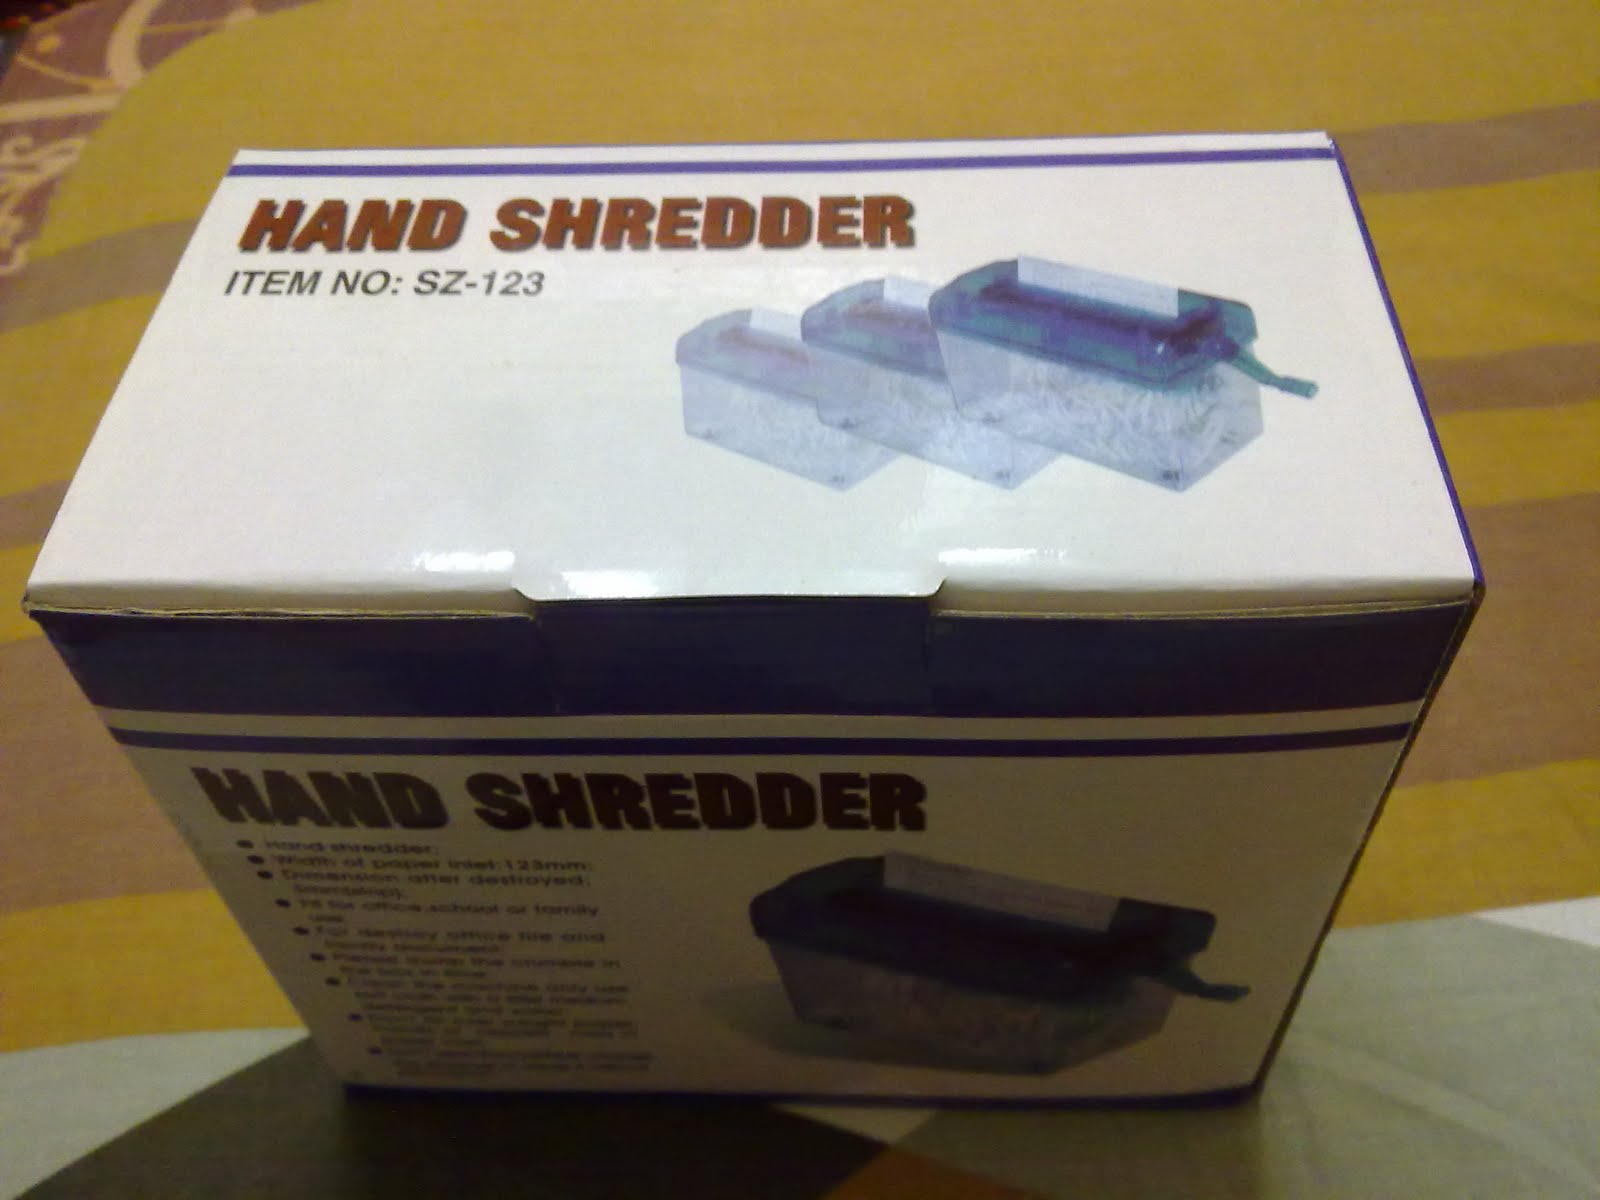 mini paper shredder for sale New and used paper shredders, security shredders, and industrial shredders for sale.